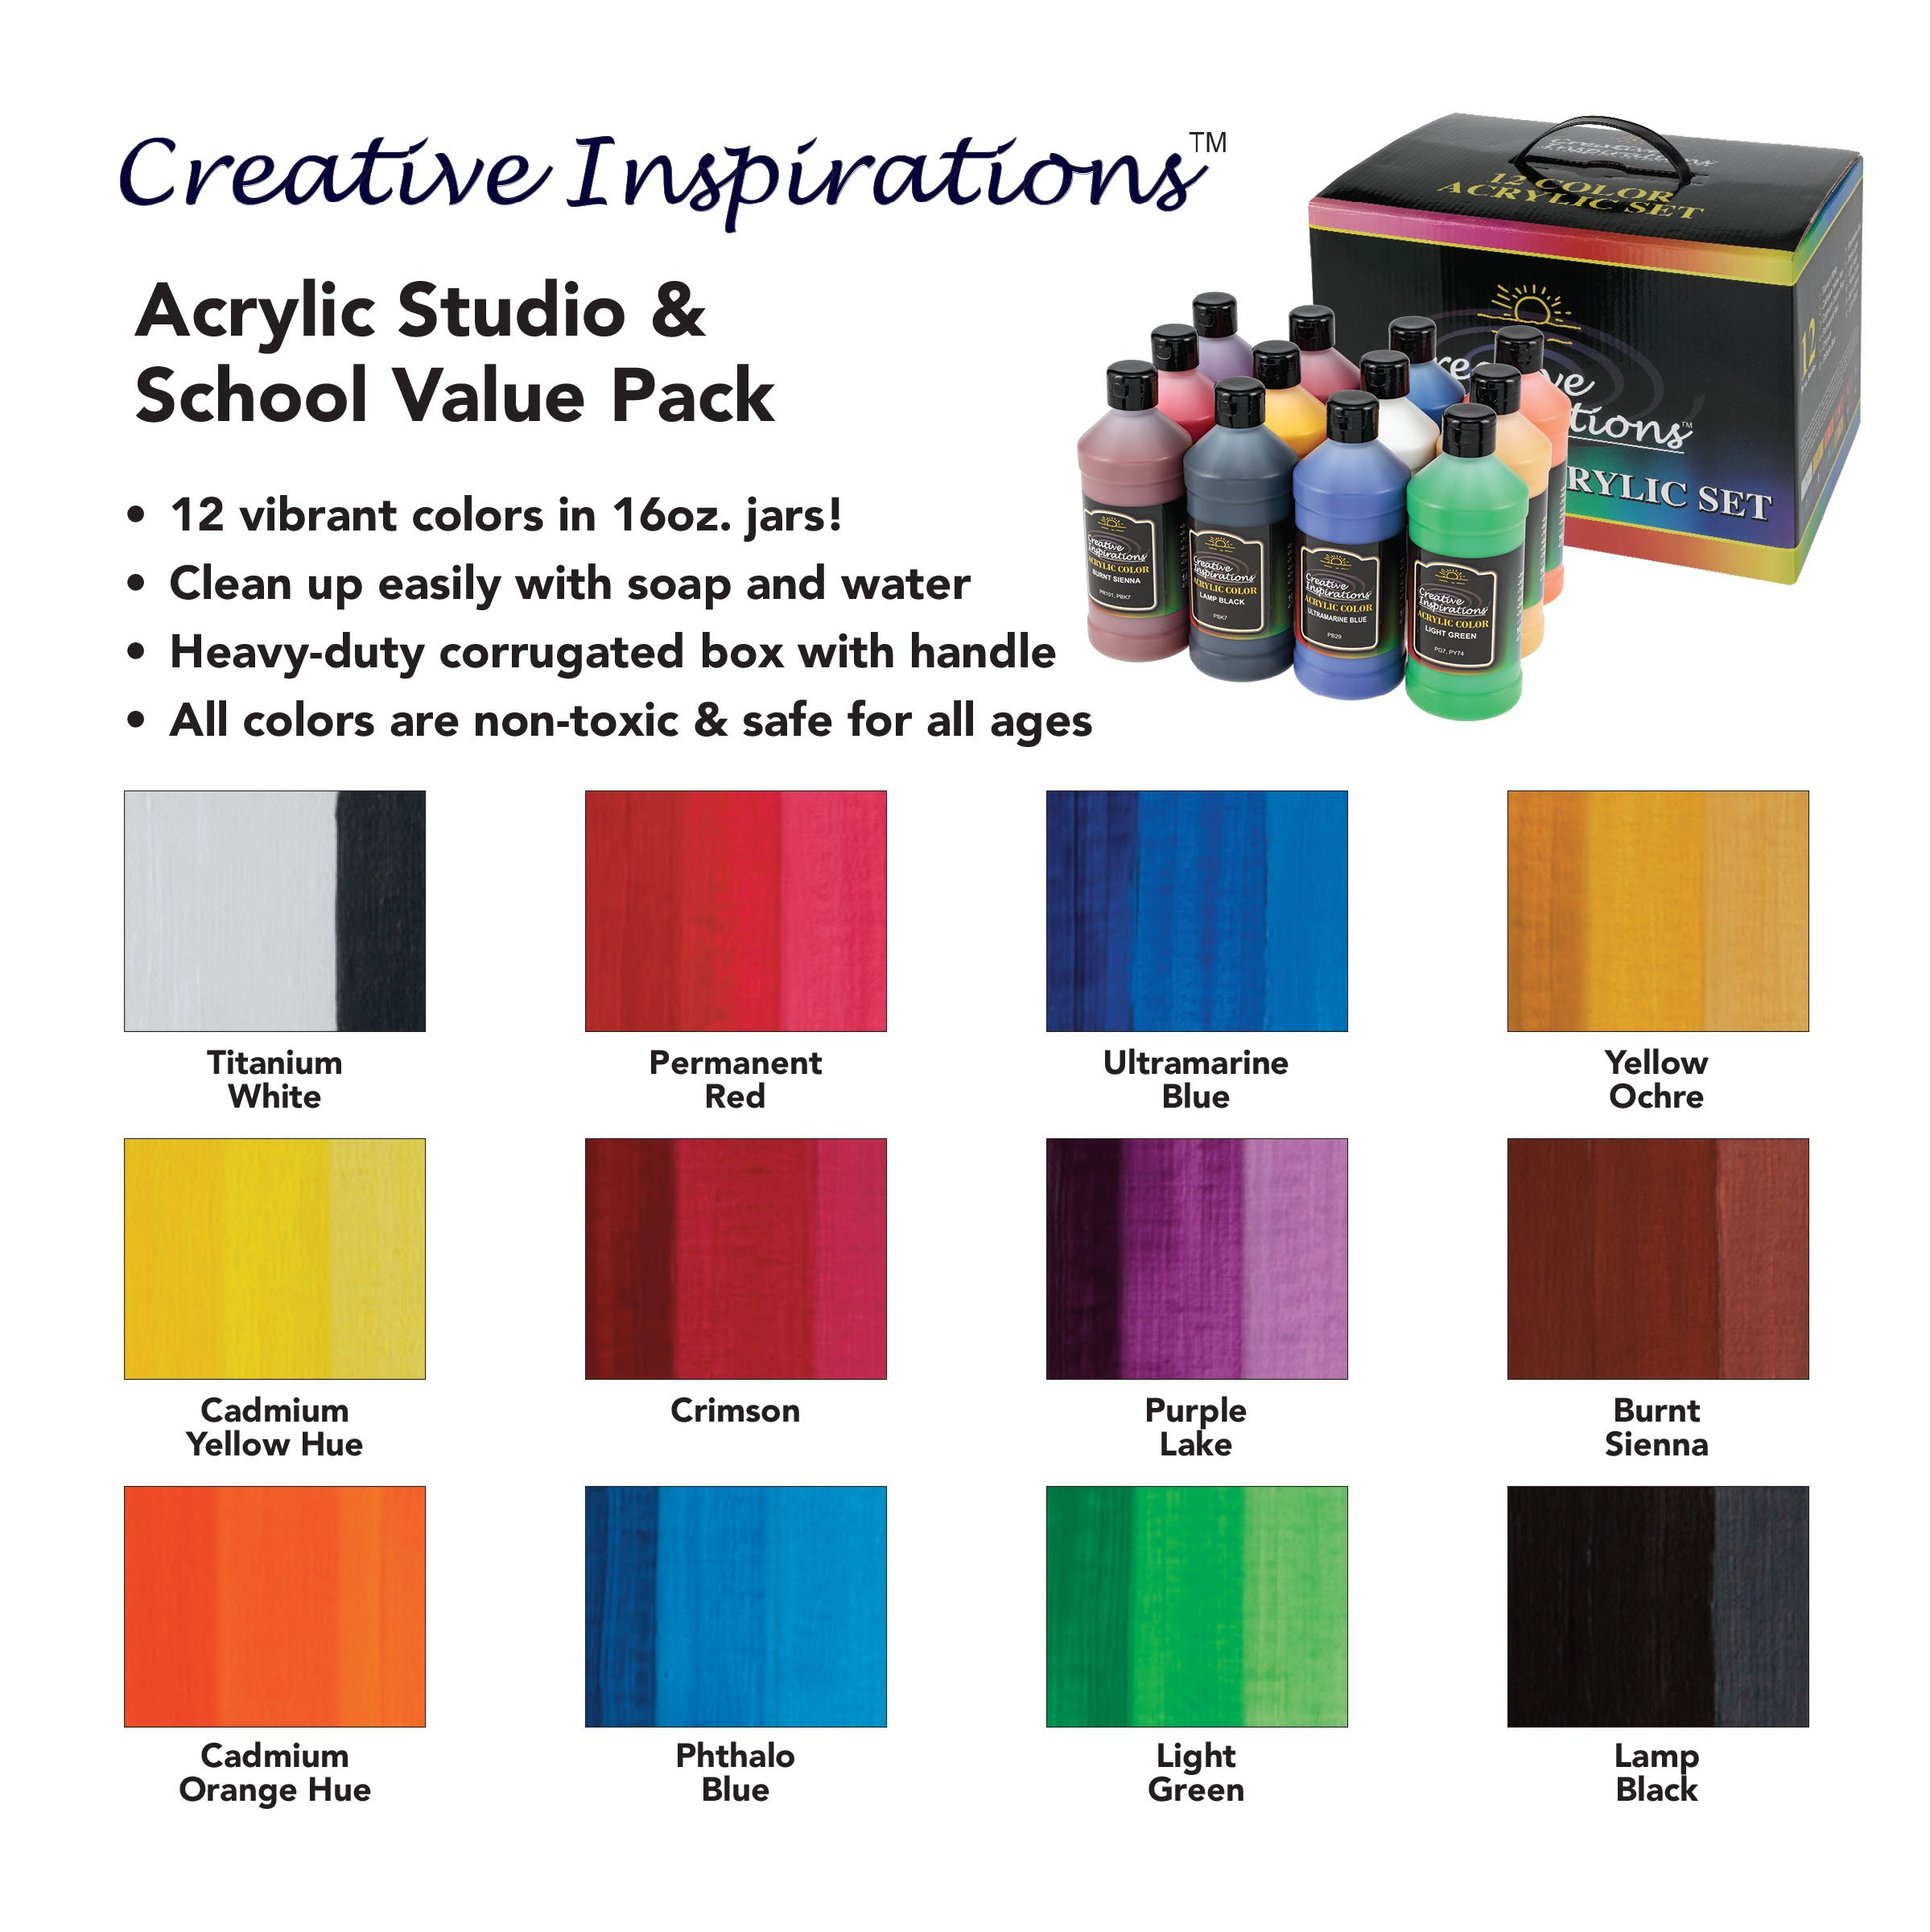 Creative Inspirations Artist Acrylic Paint Set of 12 Assorted Colors - 16 oz Bottles by Creative Inspirations